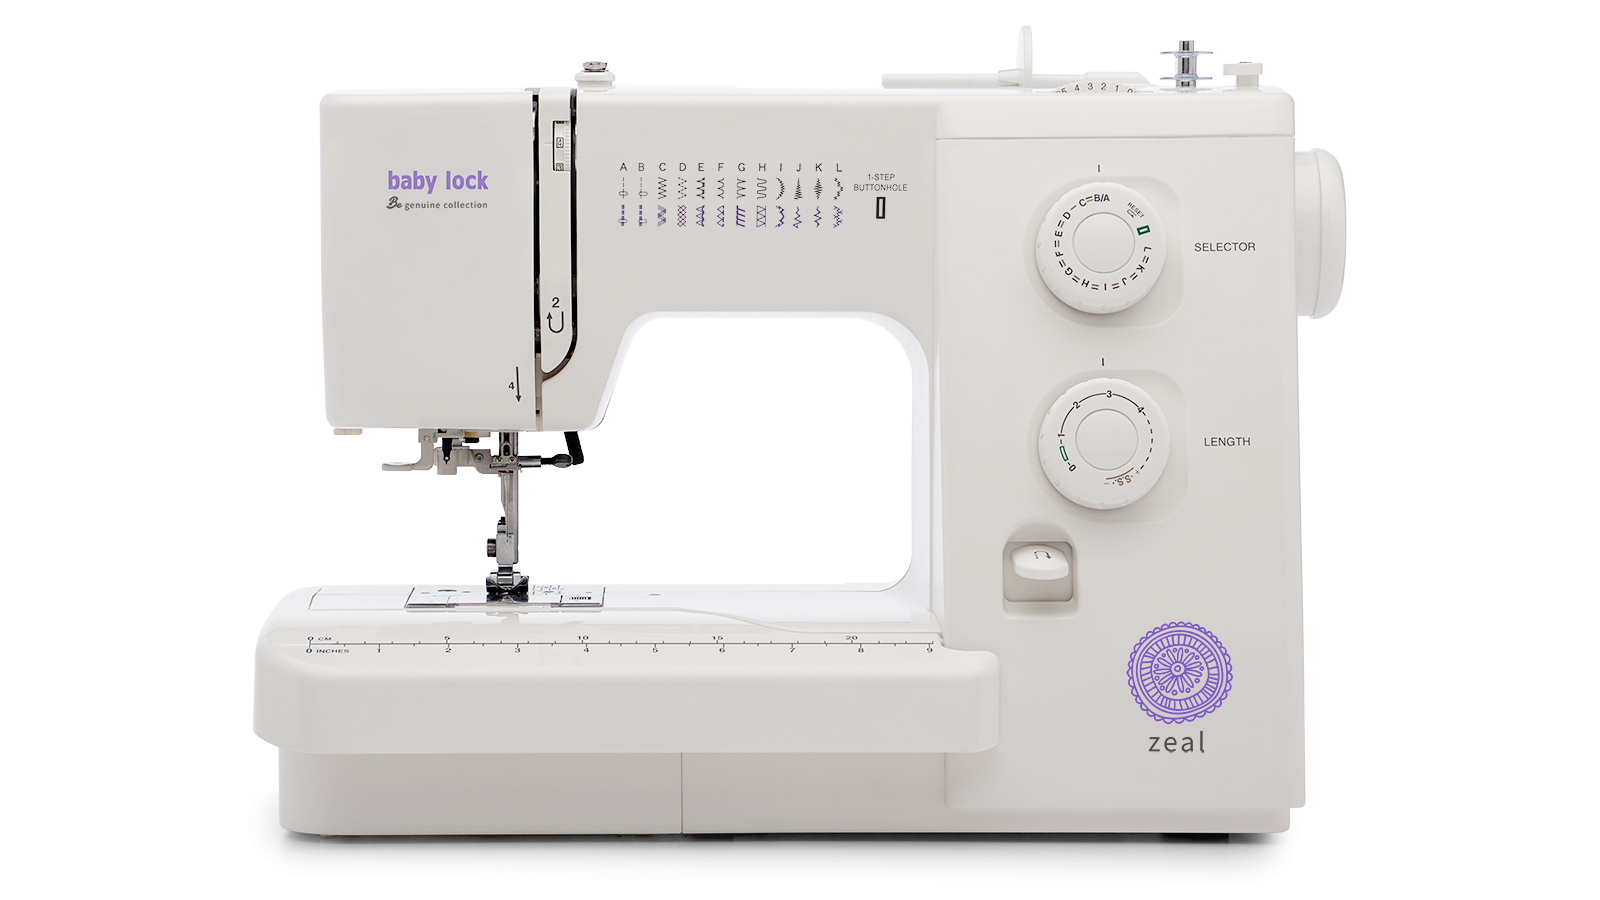 Baby-Lock_Zeal_sewing-machine_25-built-in-stitches-sewing-machine